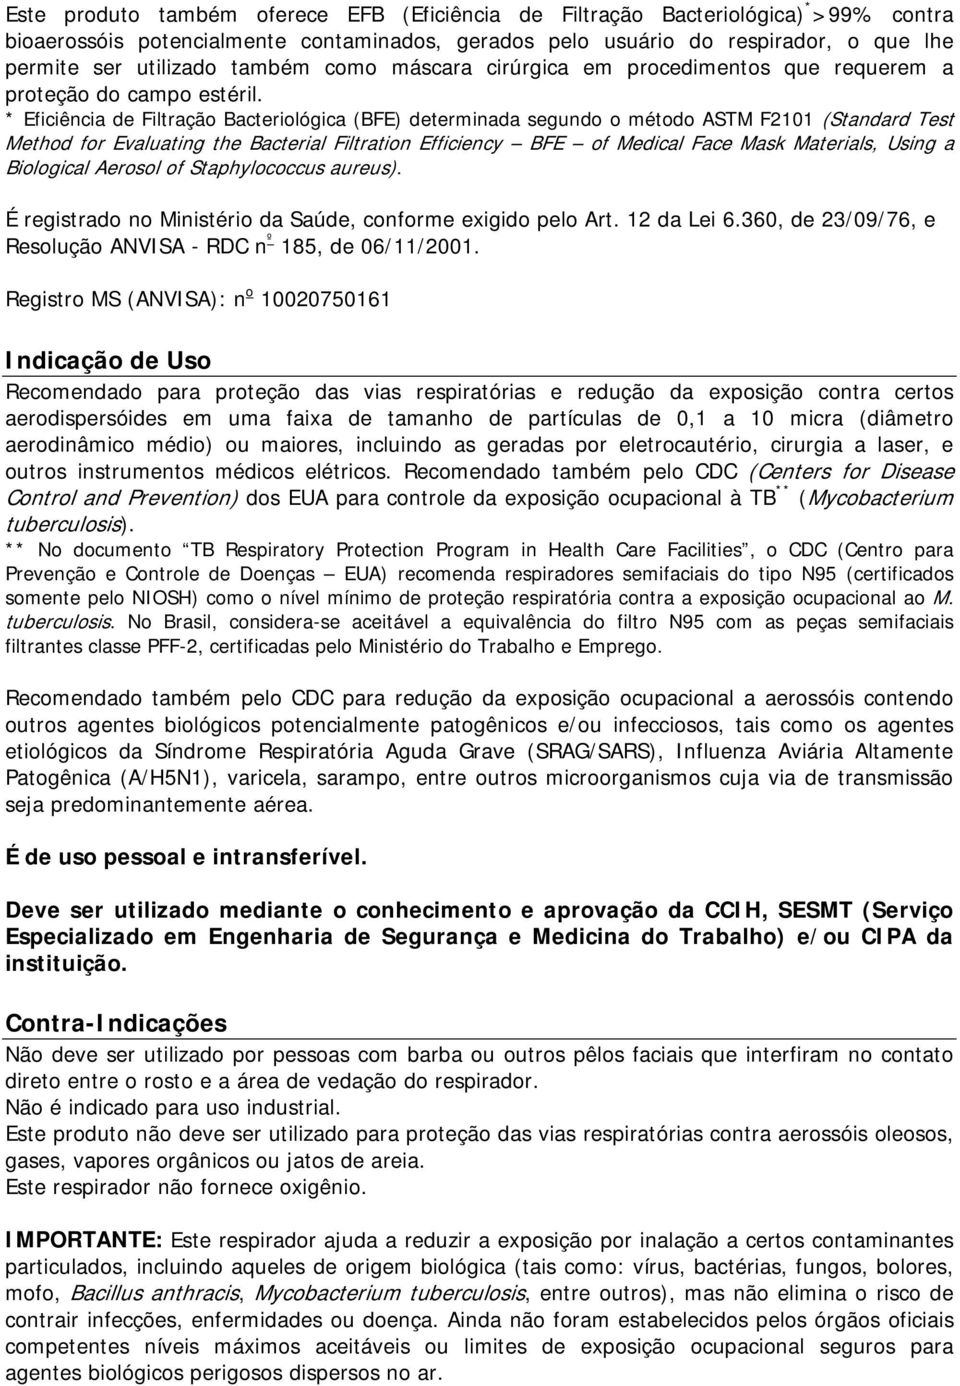 * Eficiência de Filtração Bacteriológica (BFE) determinada segundo o método ASTM F2101 (Standard Test Method for Evaluating the Bacterial Filtration Efficiency BFE of Medical Face Mask Materials,